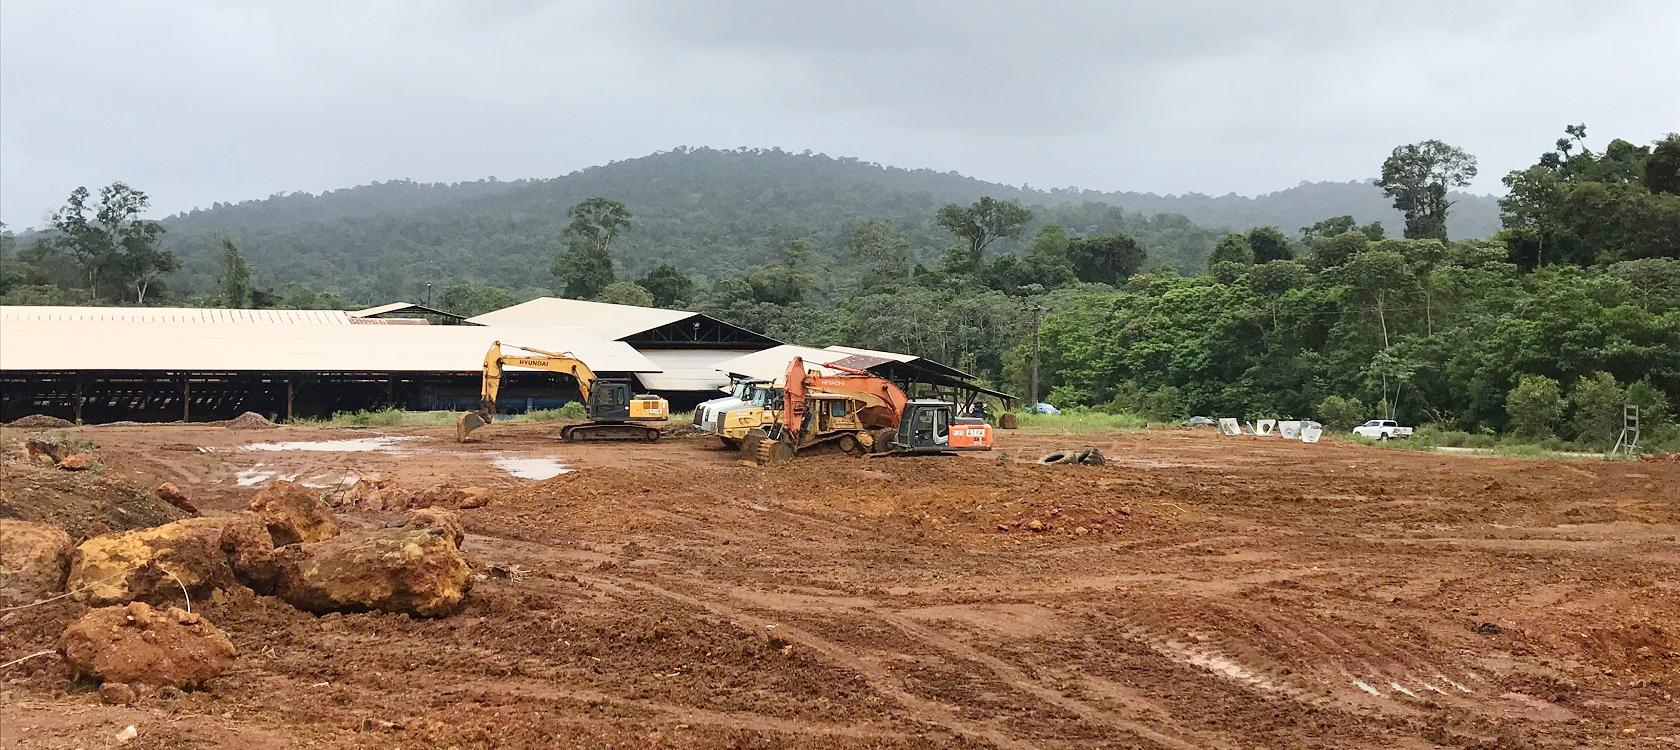 power station biomass guyana electric renewable energy wood construction site